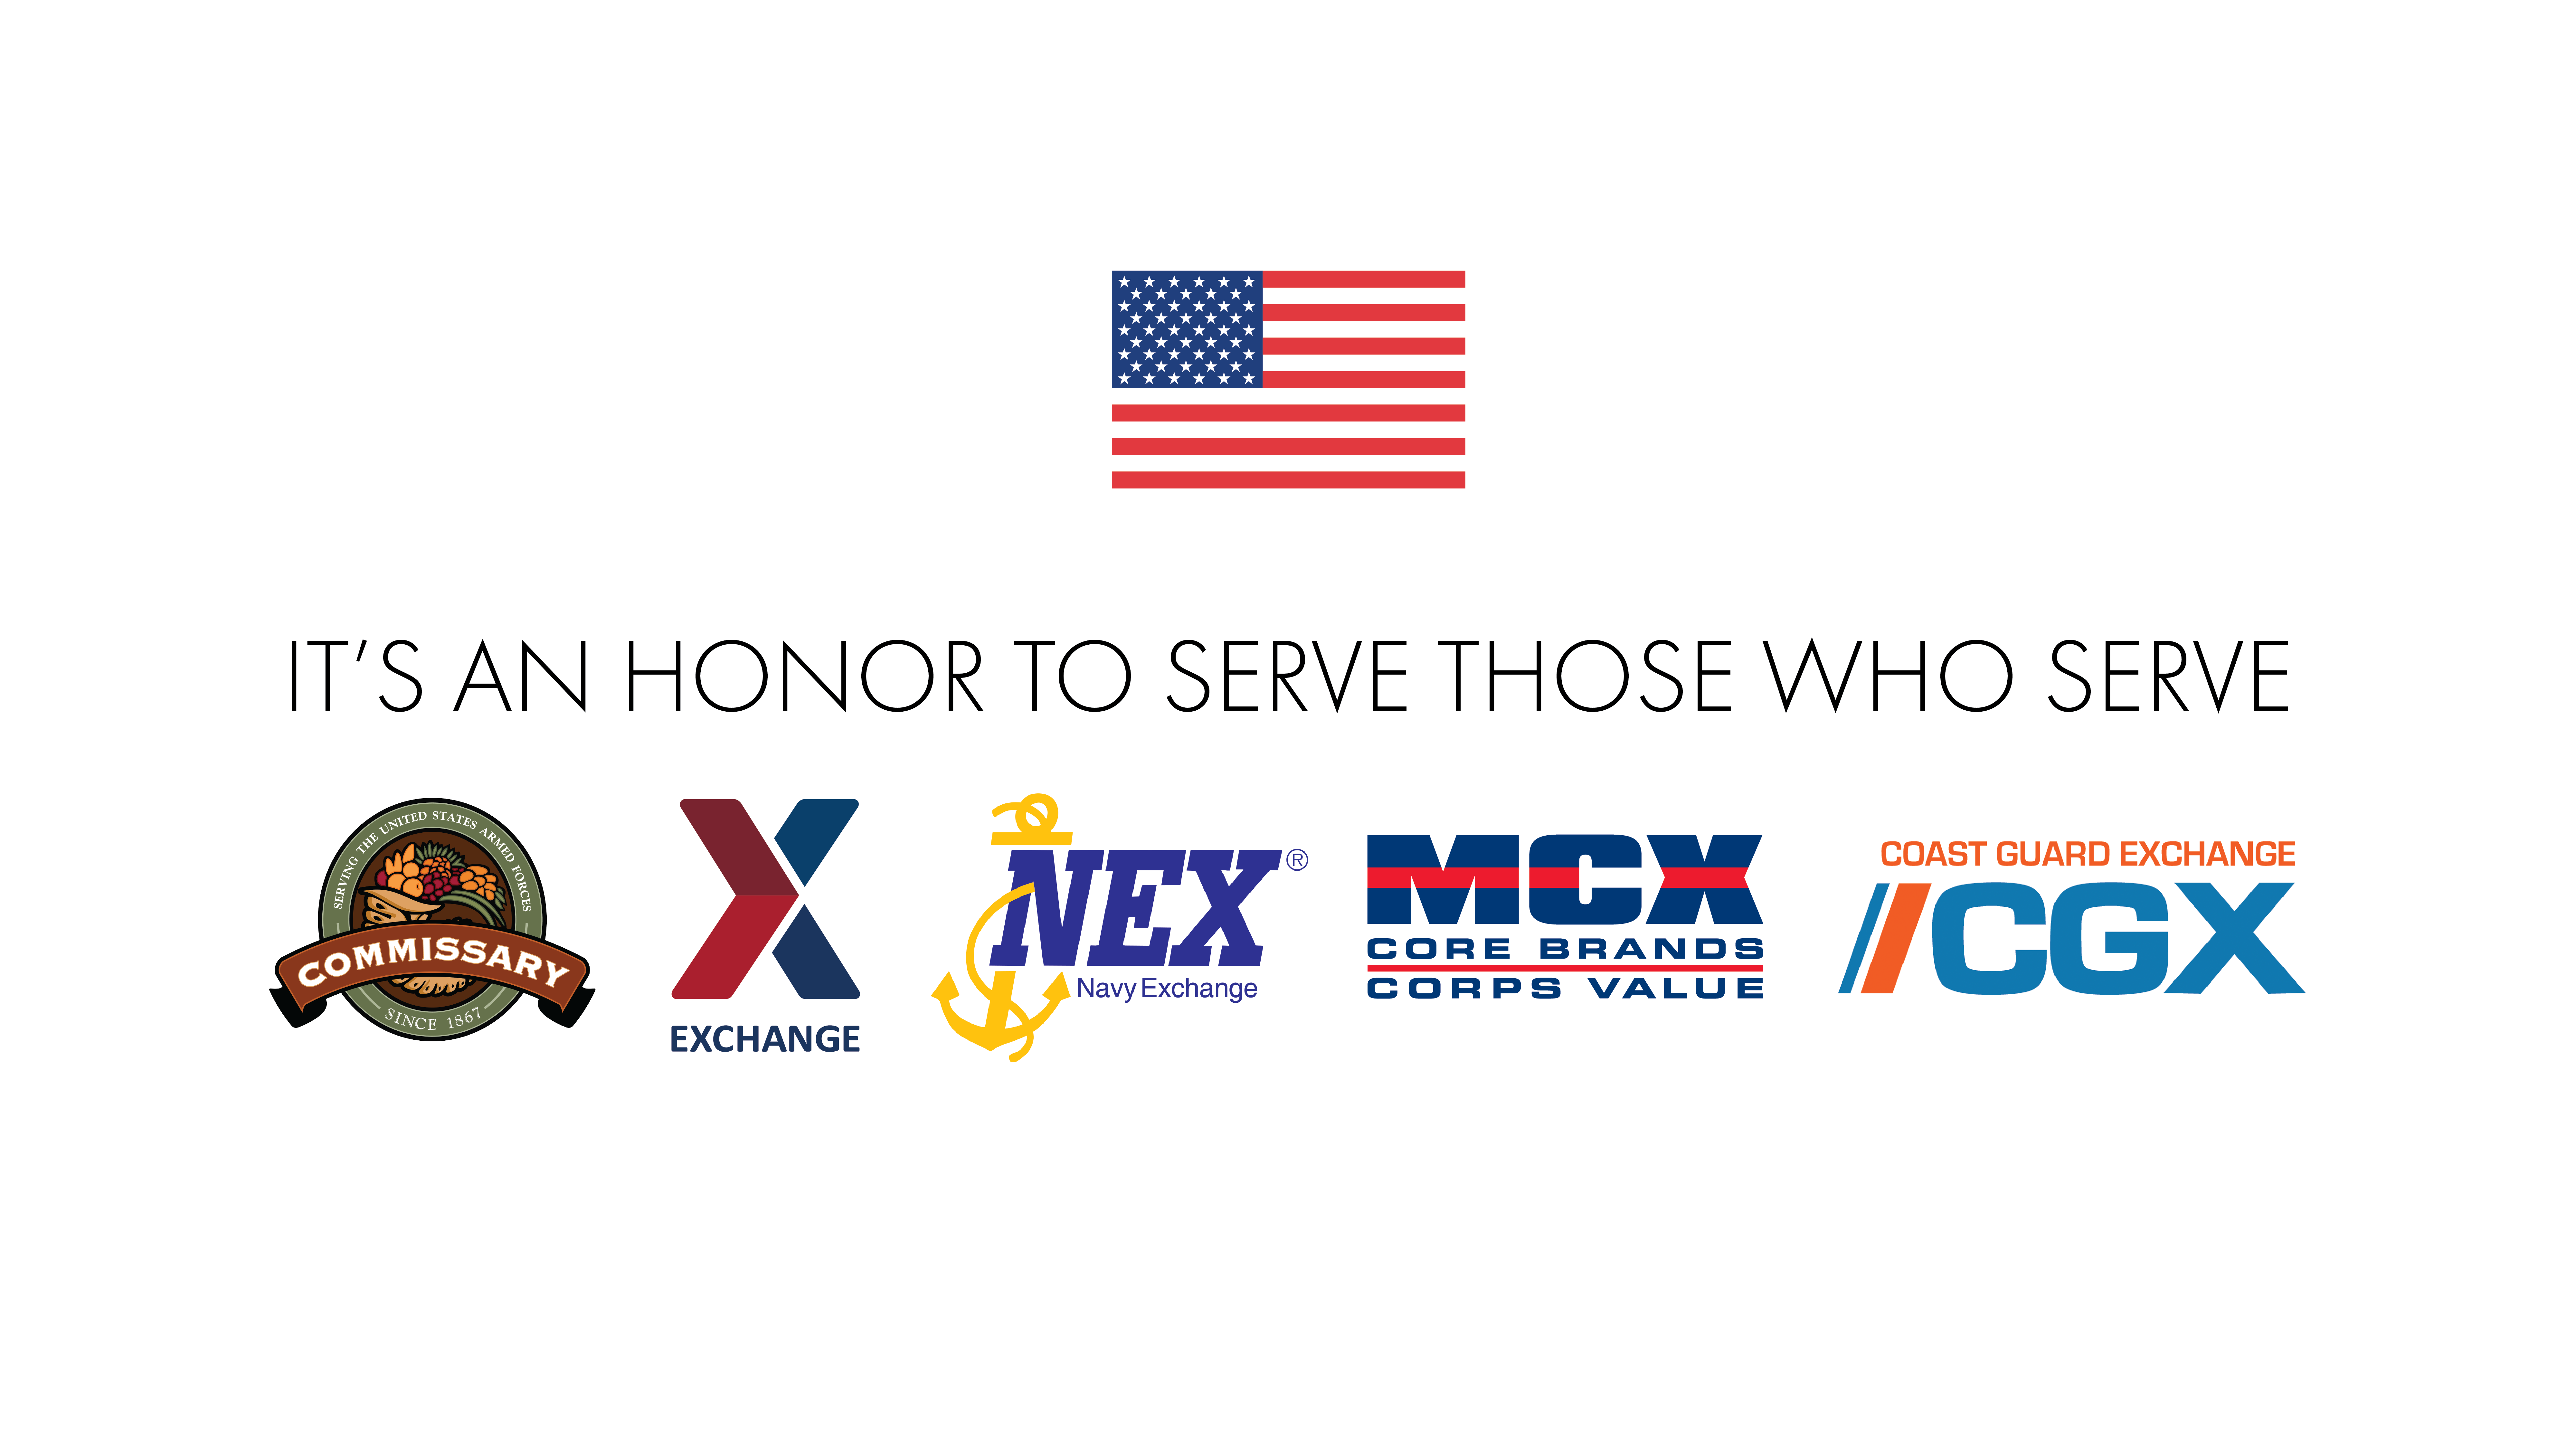 It's an honor to serve those who serve